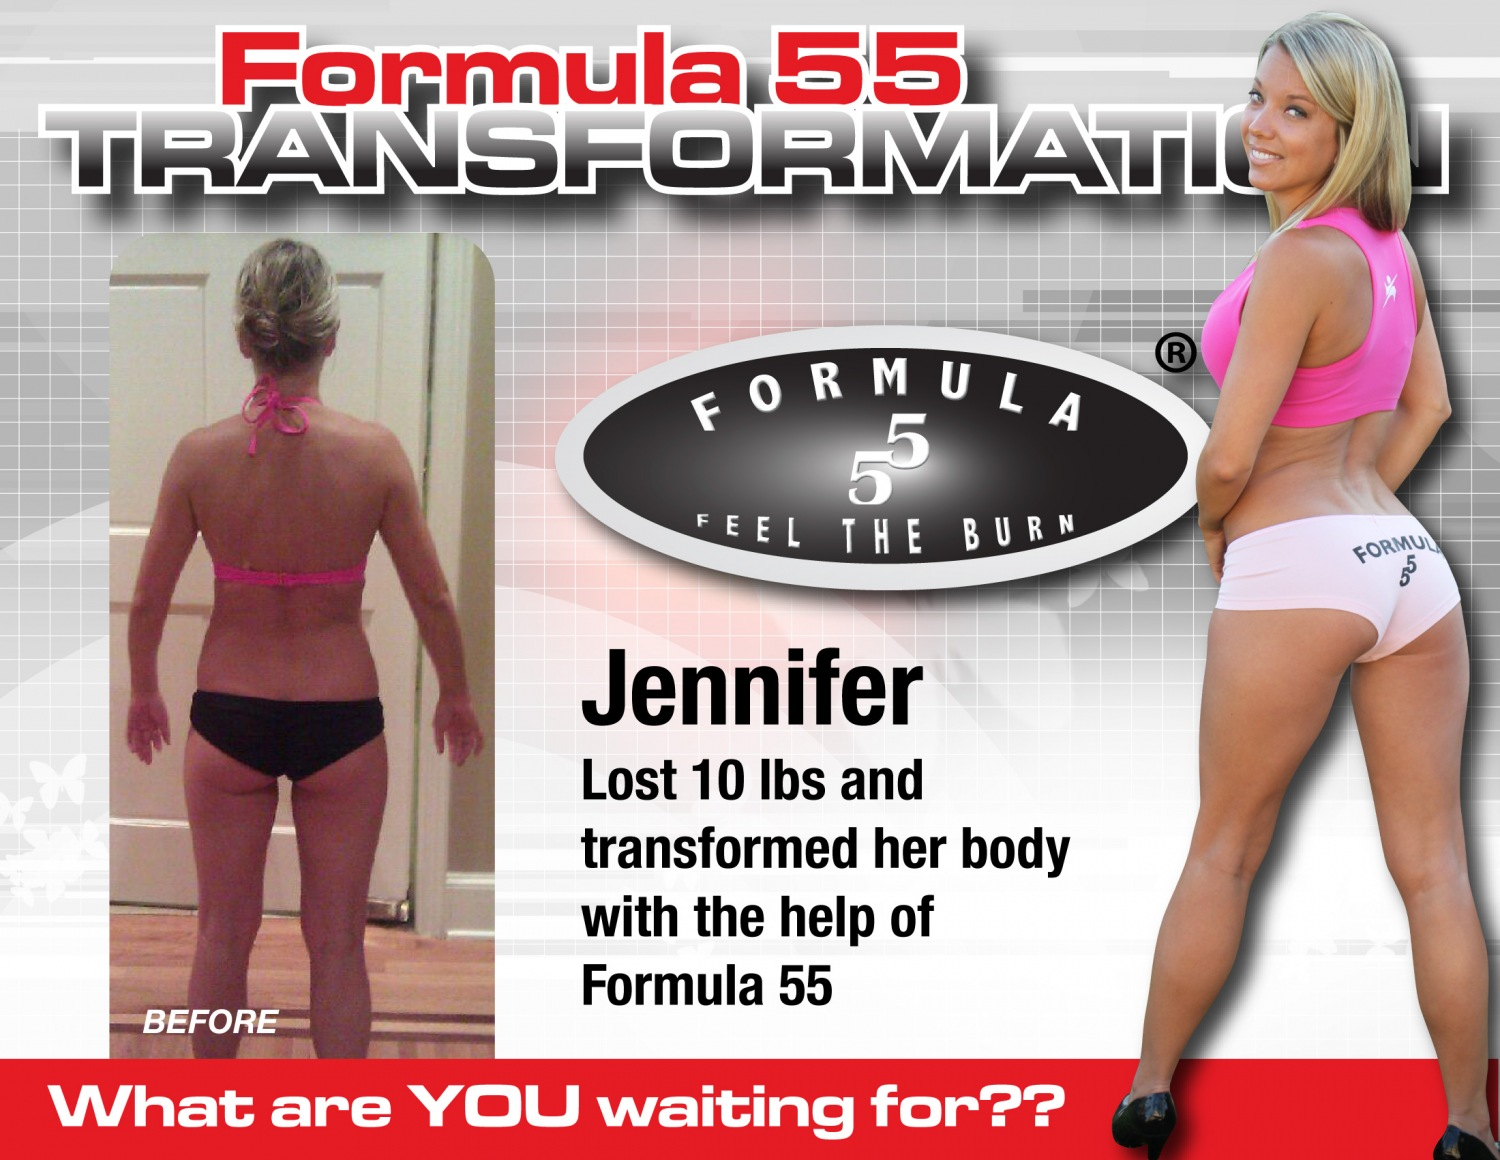 form-55-Transformation-Jennifer-G.jpg